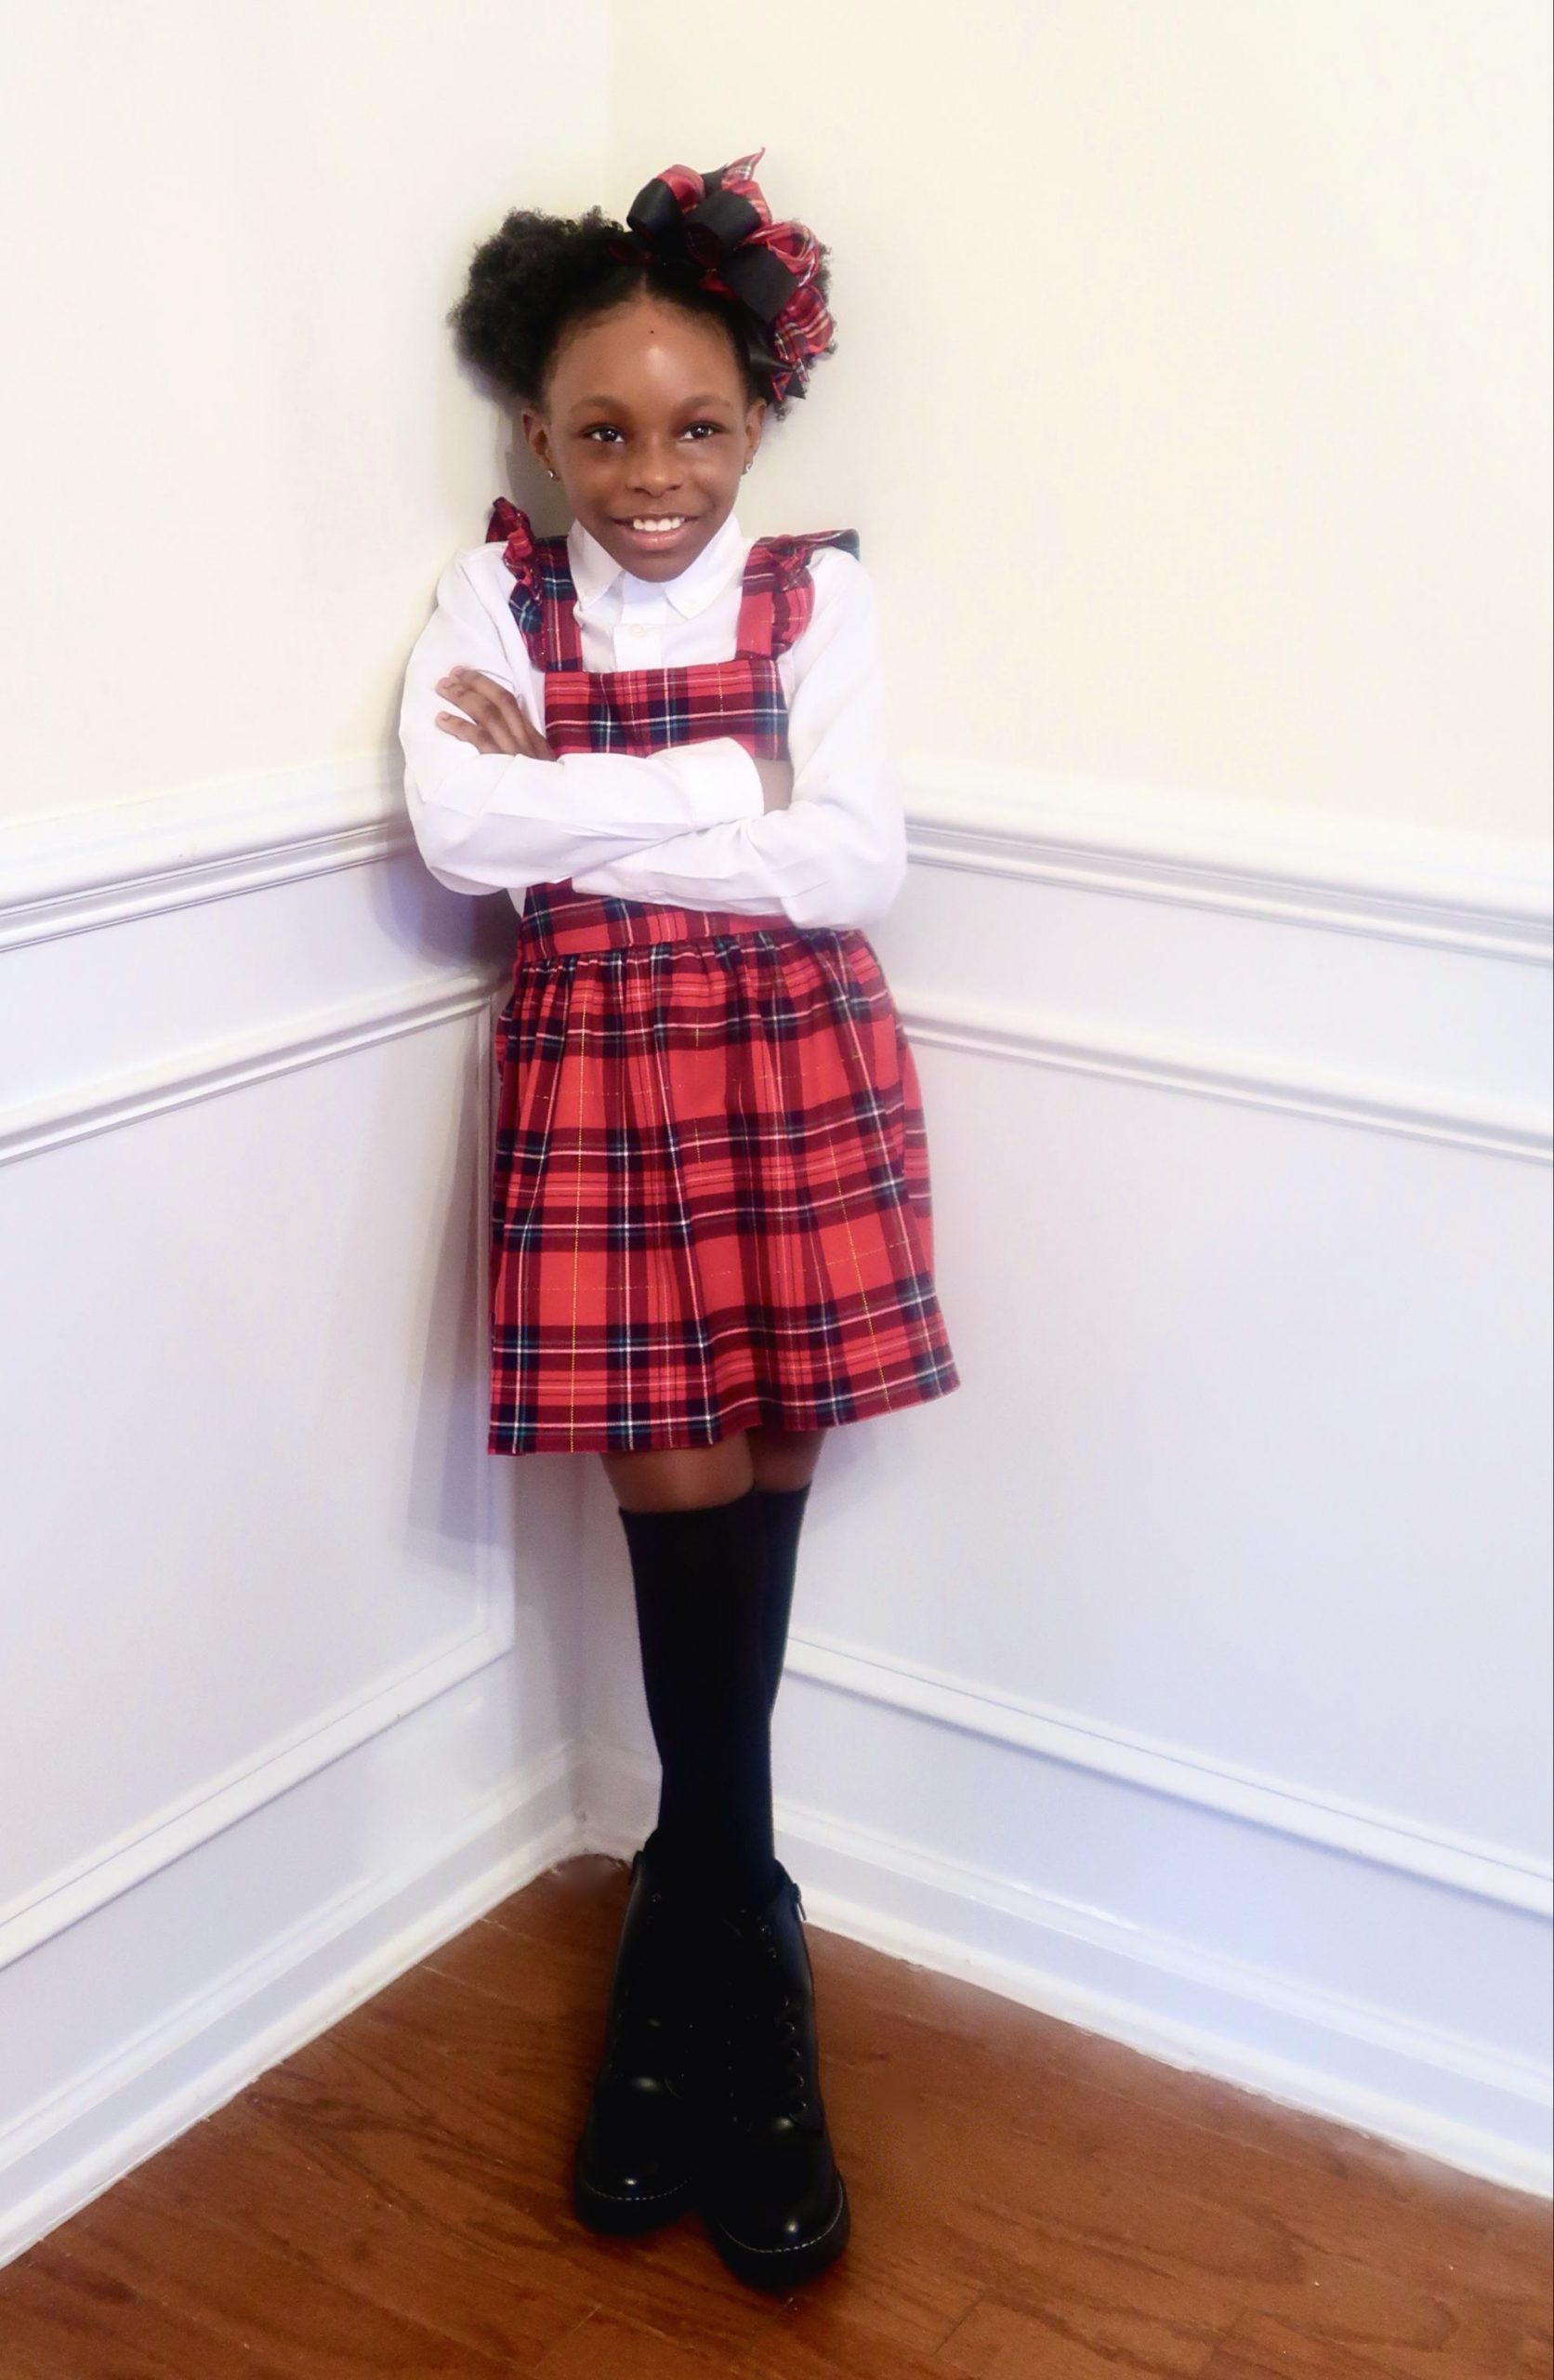 The Perfect Plaid Dress for a Little girl